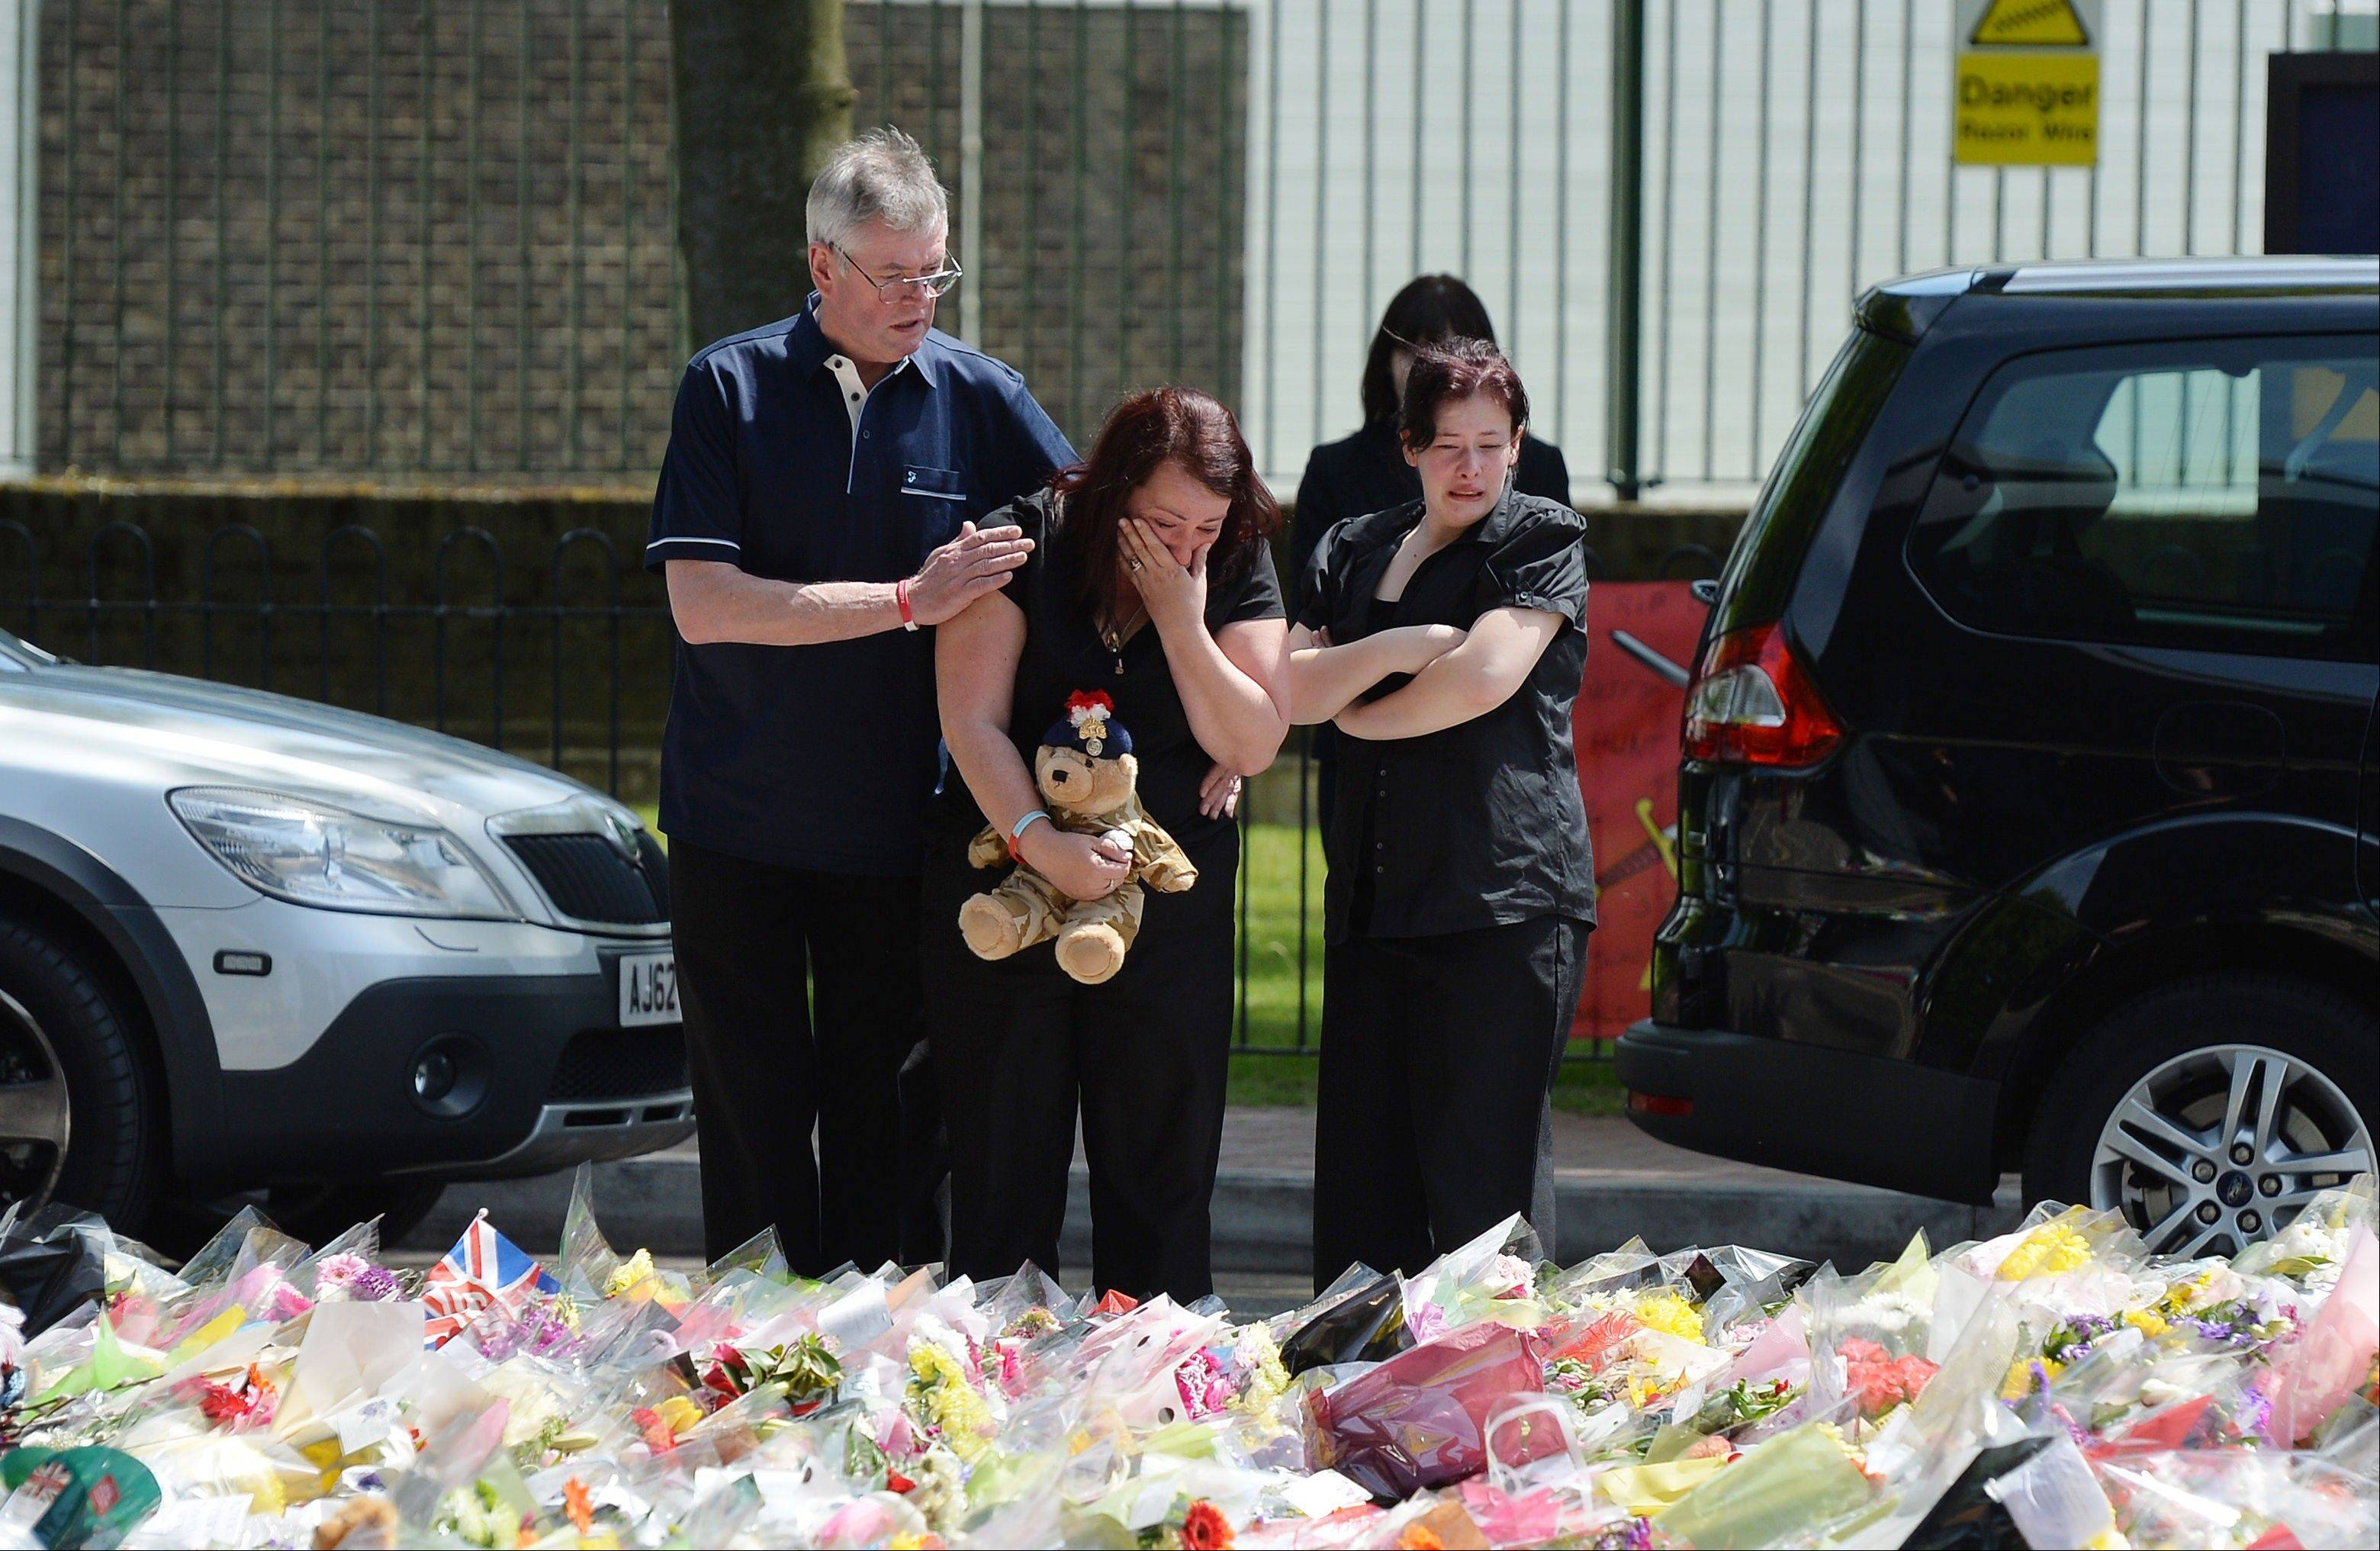 Lyn Rigby, mother of Drummer Lee Rigby, holding a teddy bear joins other family members as they look at floral tributes outside Woolwich Barracks left by well wishers as they visited the scene of the 25-year-old soldier�s murder in Woolwich, south-east London, Sunday May 26, 2013.